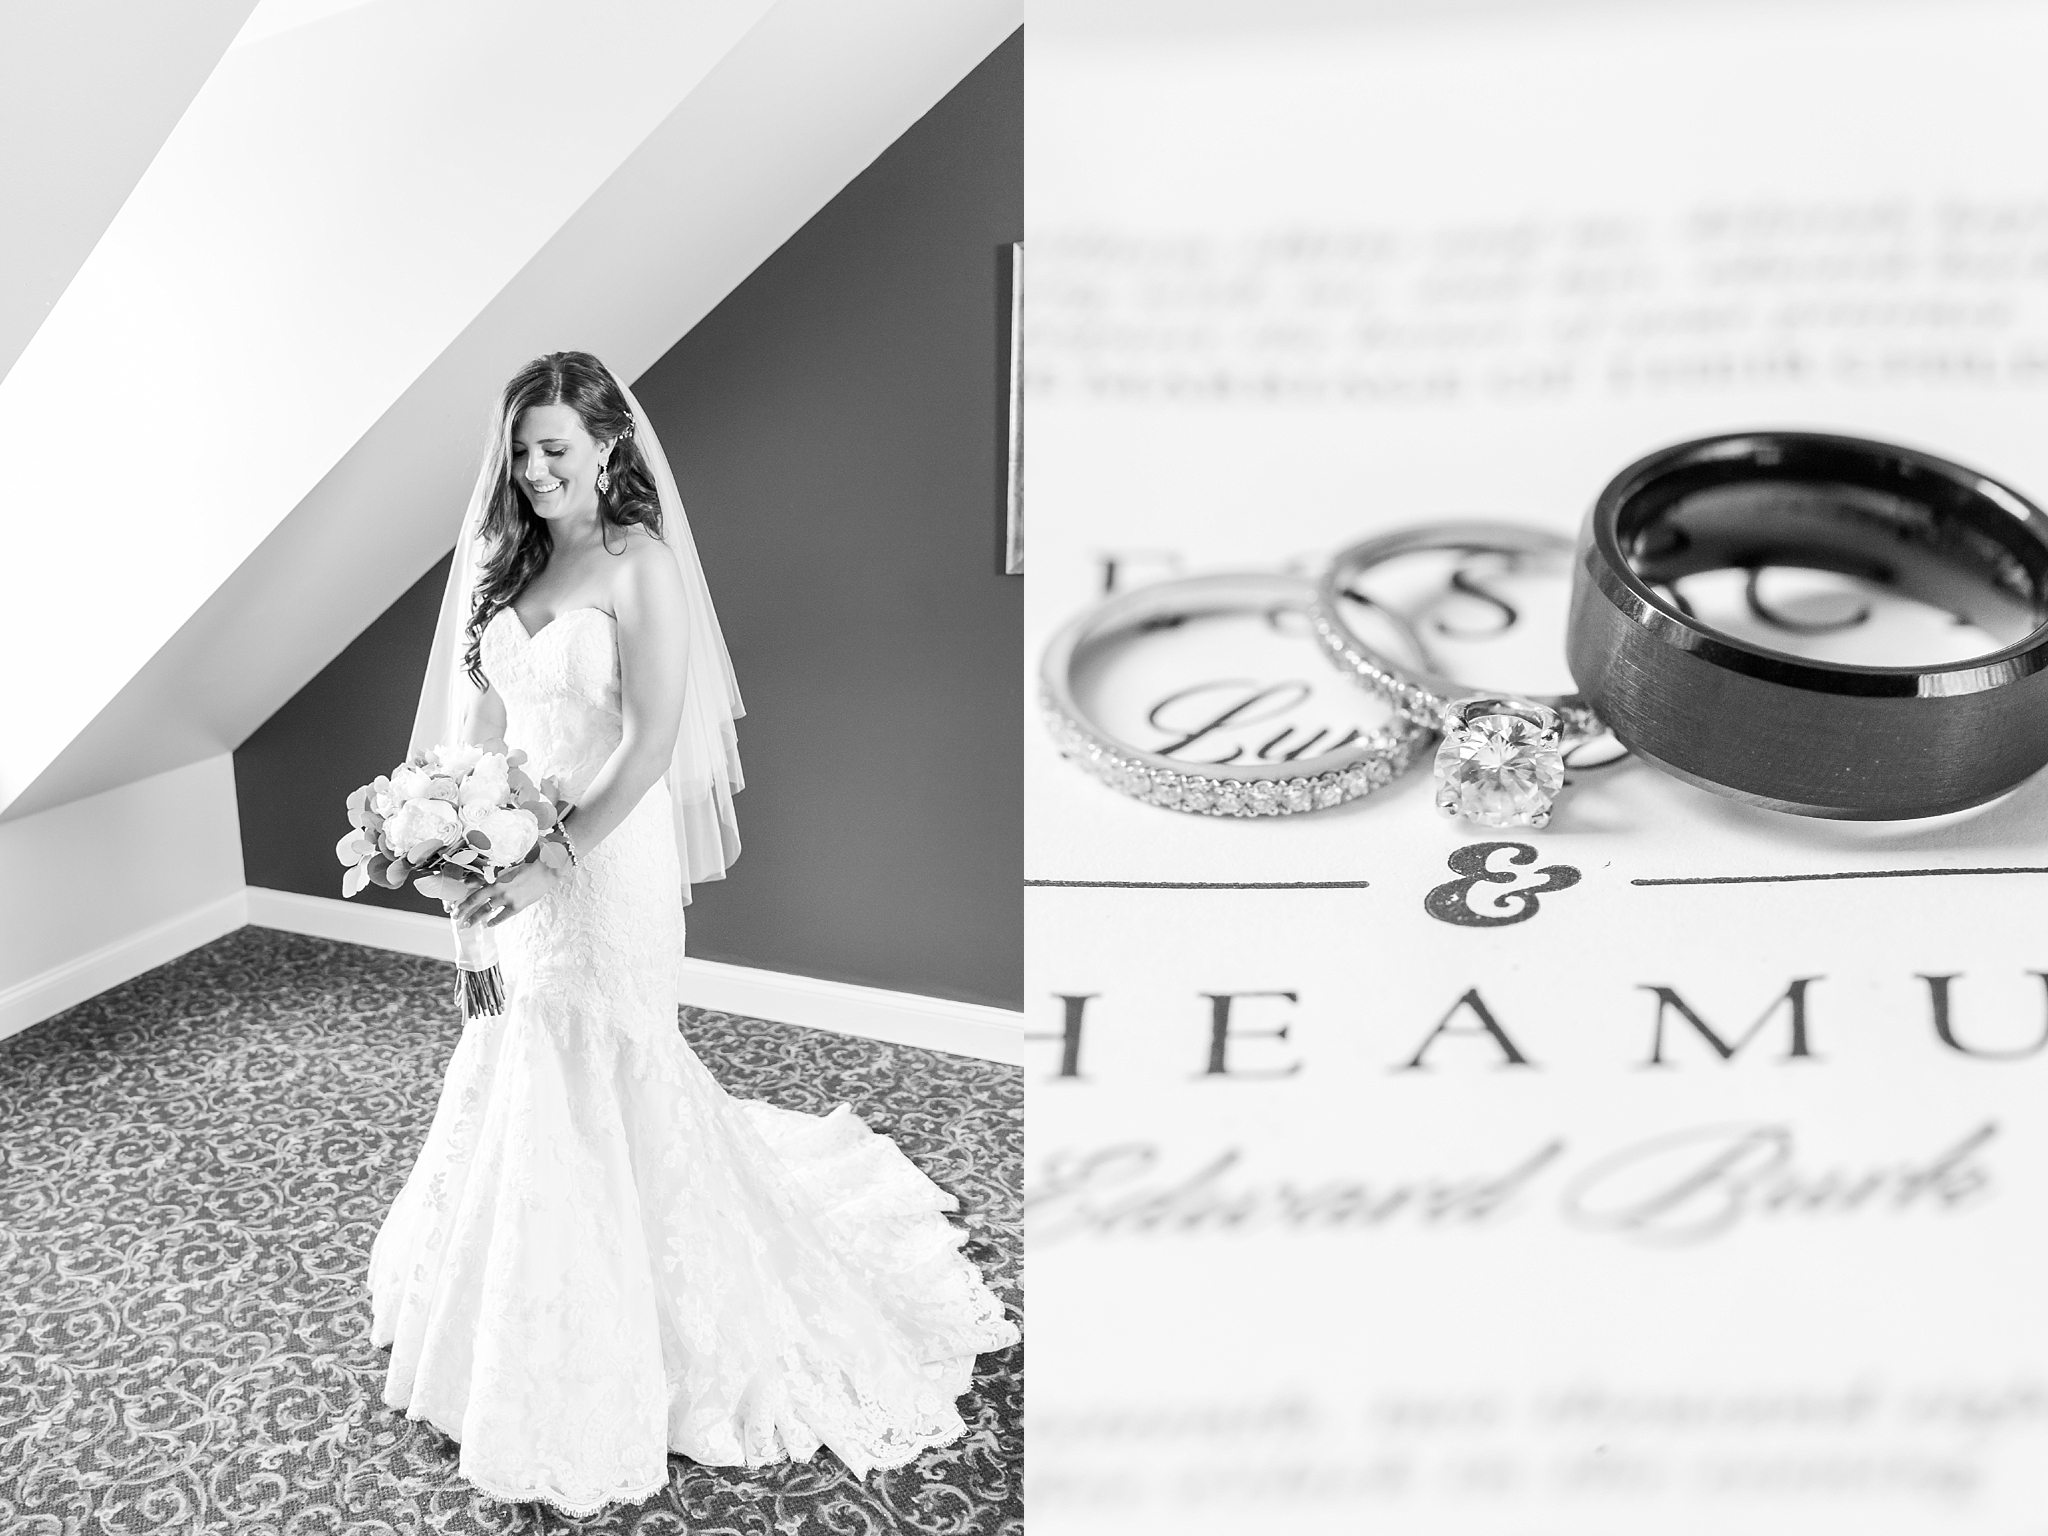 candid-timeless-wedding-photos-at-the-captains-club-in-grand-blanc-michigan-by-courtney-carolyn-photography_0020.jpg